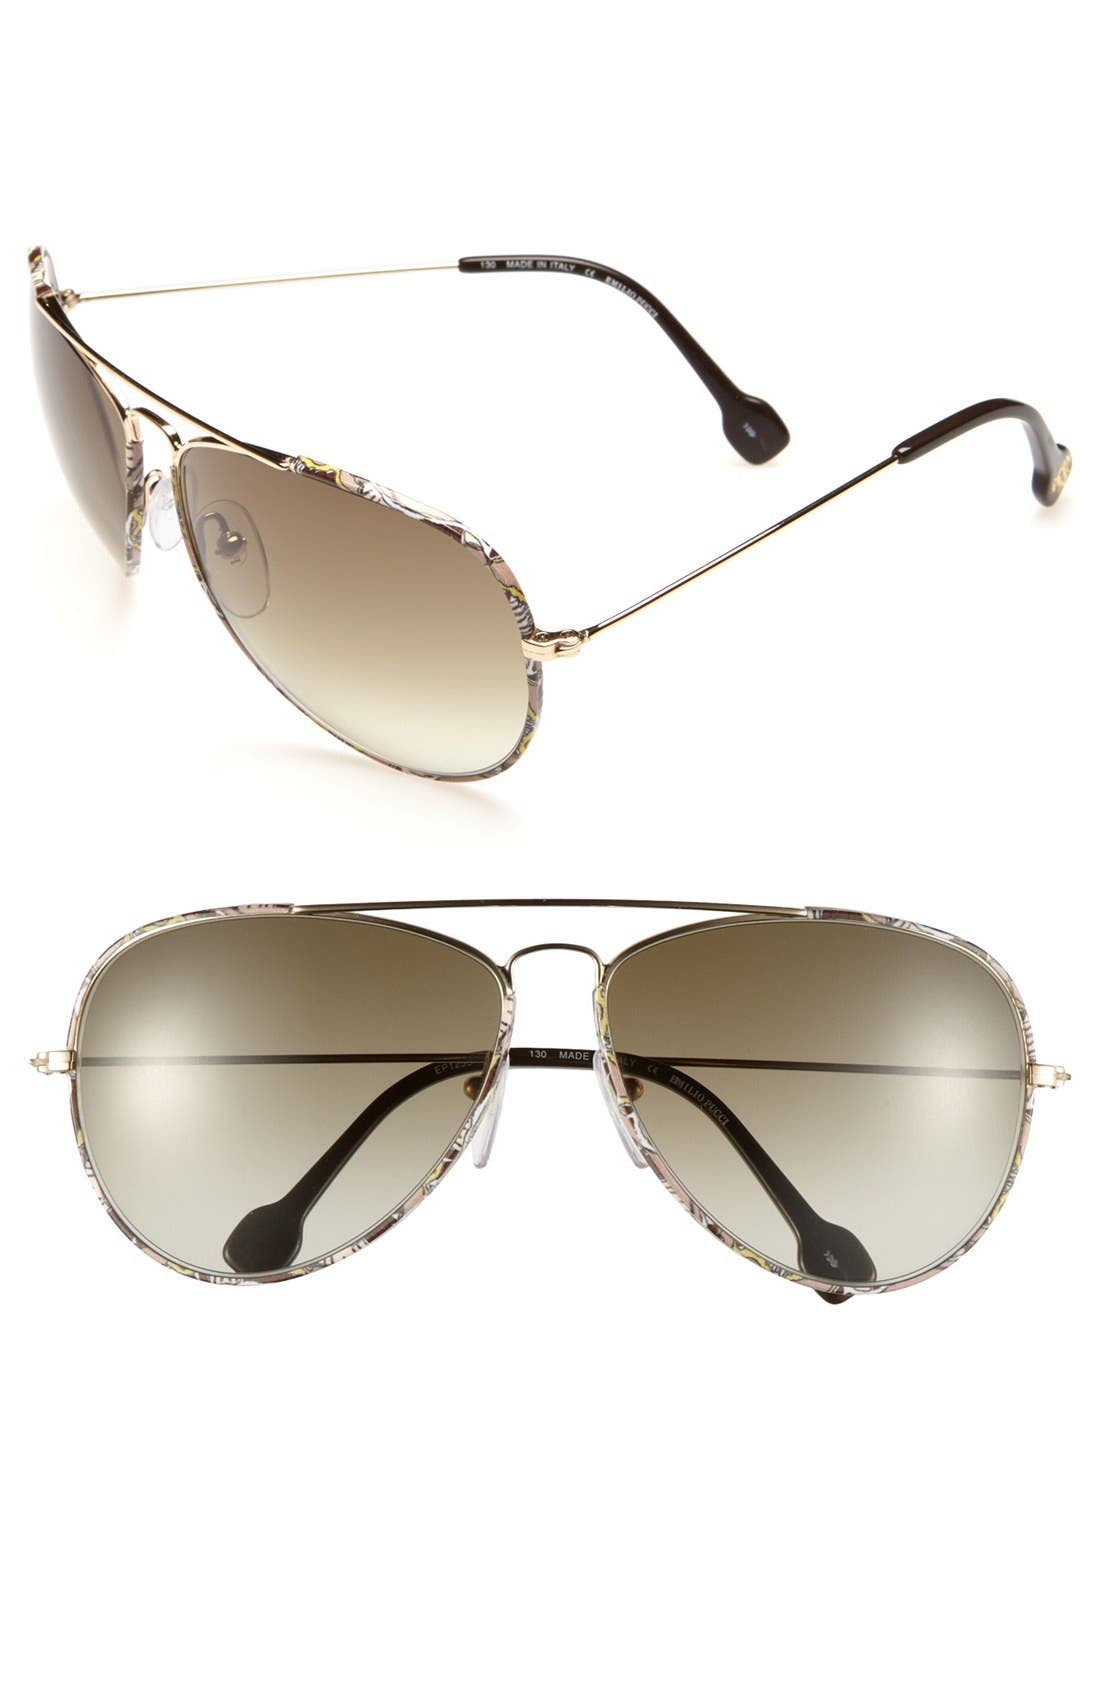 Main Image - Emilio Pucci 62mm Metal Aviator Sunglasses (Special Purchase)